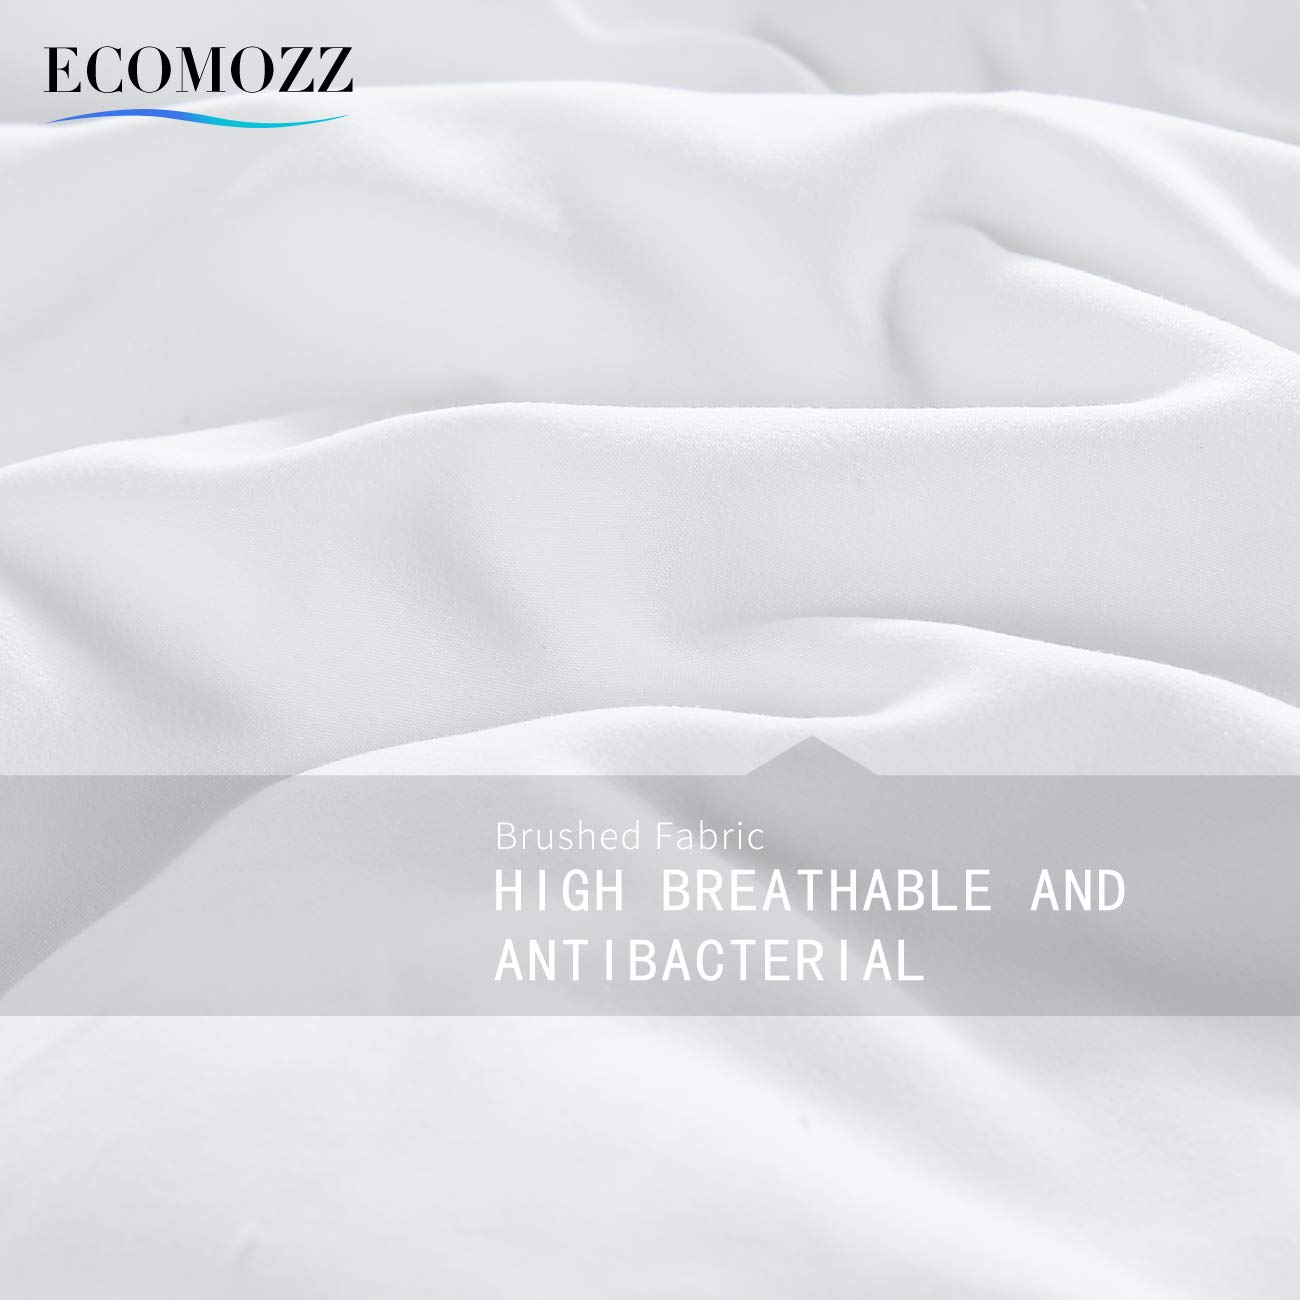 EcoMozz King Comforter with Corner Tabs - All Season Down Alternative Comforter - Soft Warm Quilted Duvet Insert - Hypoallergenic Fluffy Hotel Collection - White by EcoMozz (Image #6)